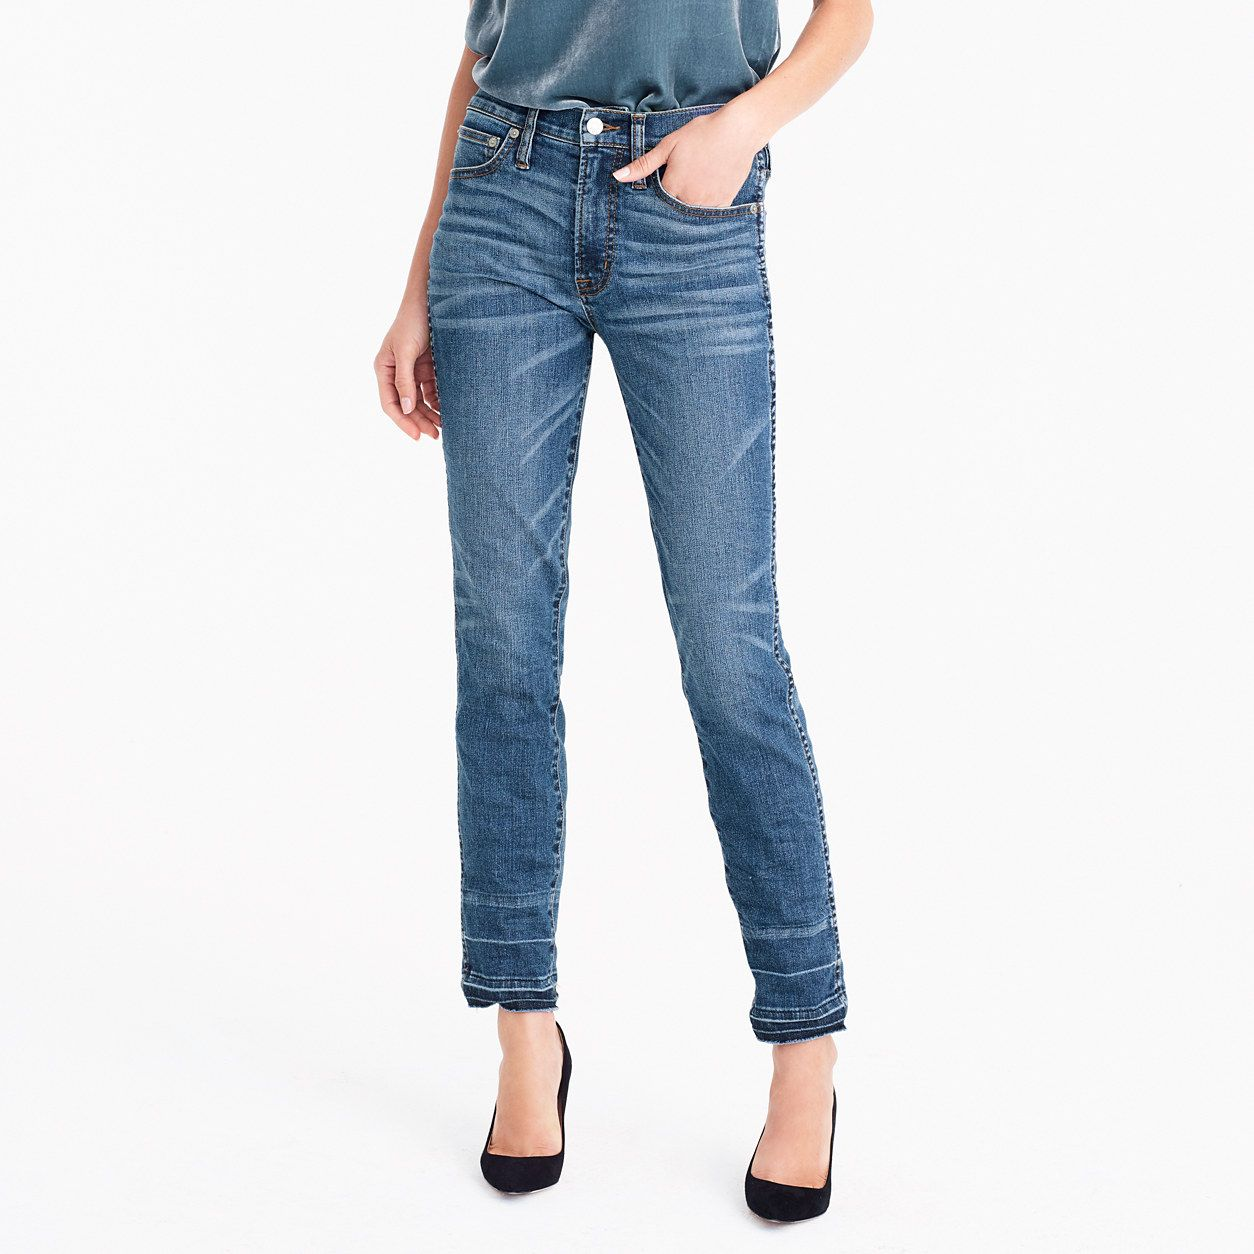 02a54db38f J.Crew Womens Vintage Straight Jean In Piccadilly Wash (Size 25 ...